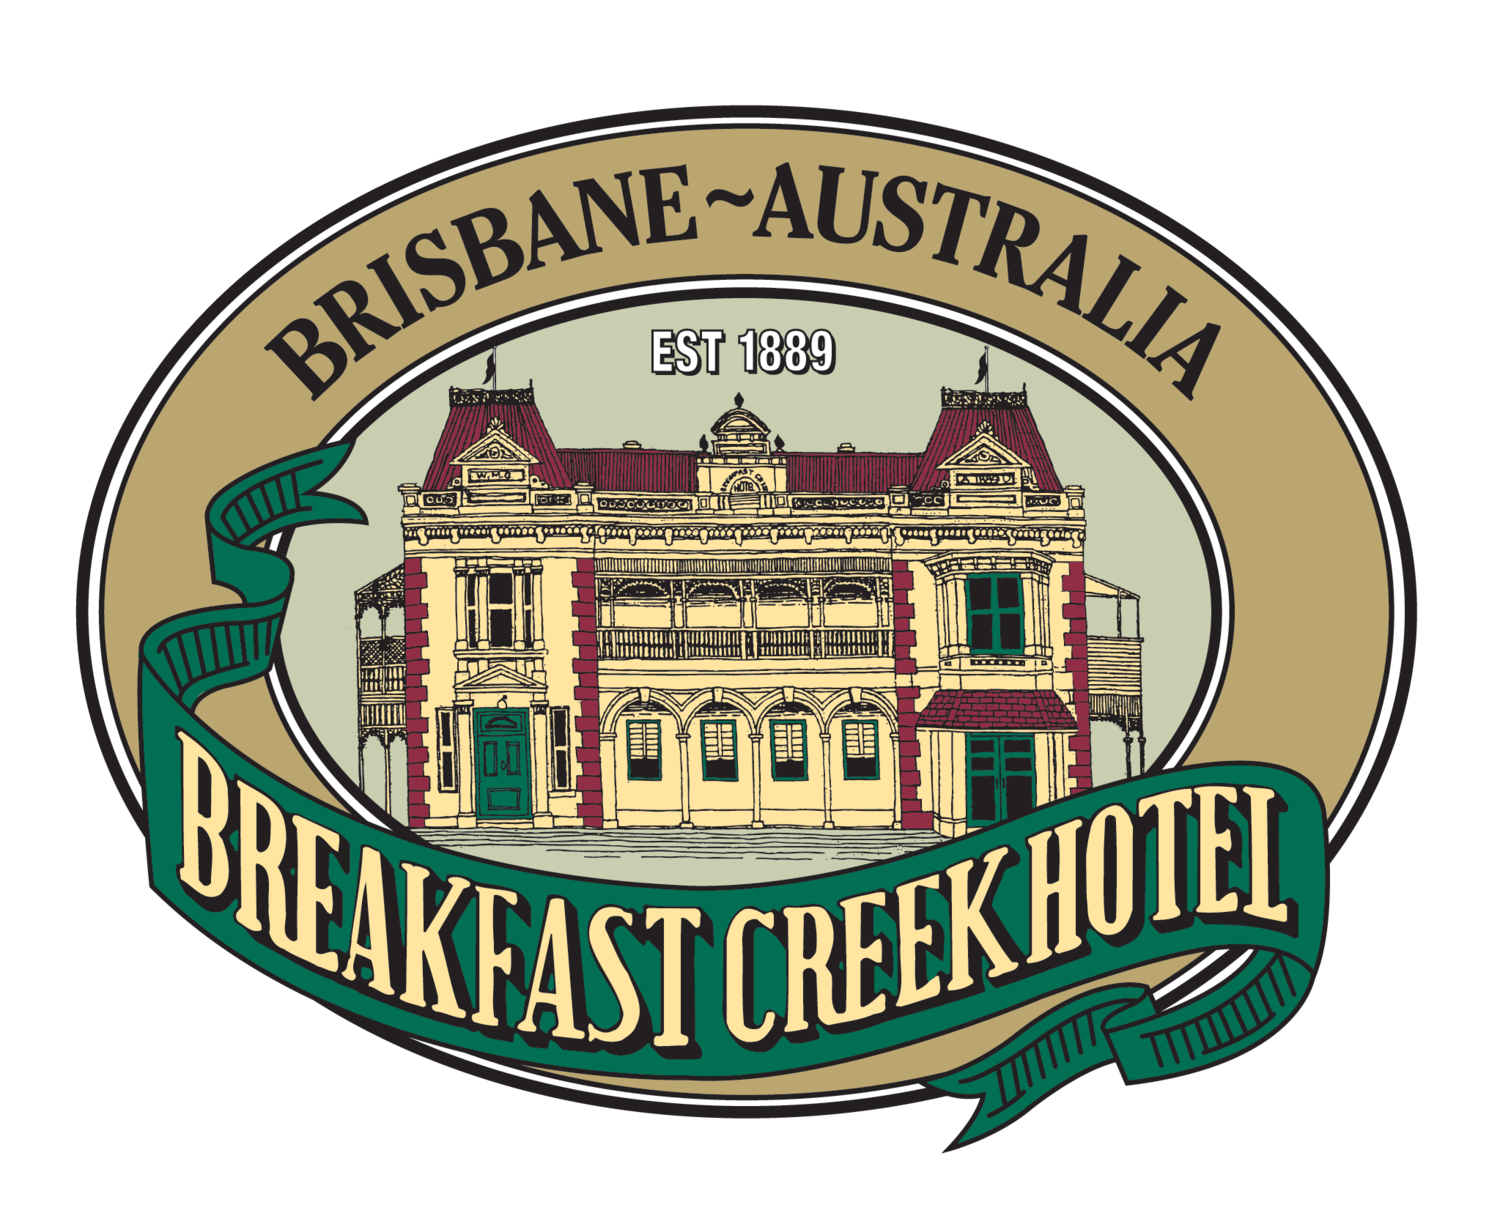 Breakfast Creek Hotel, Breakfast Creek, QLD